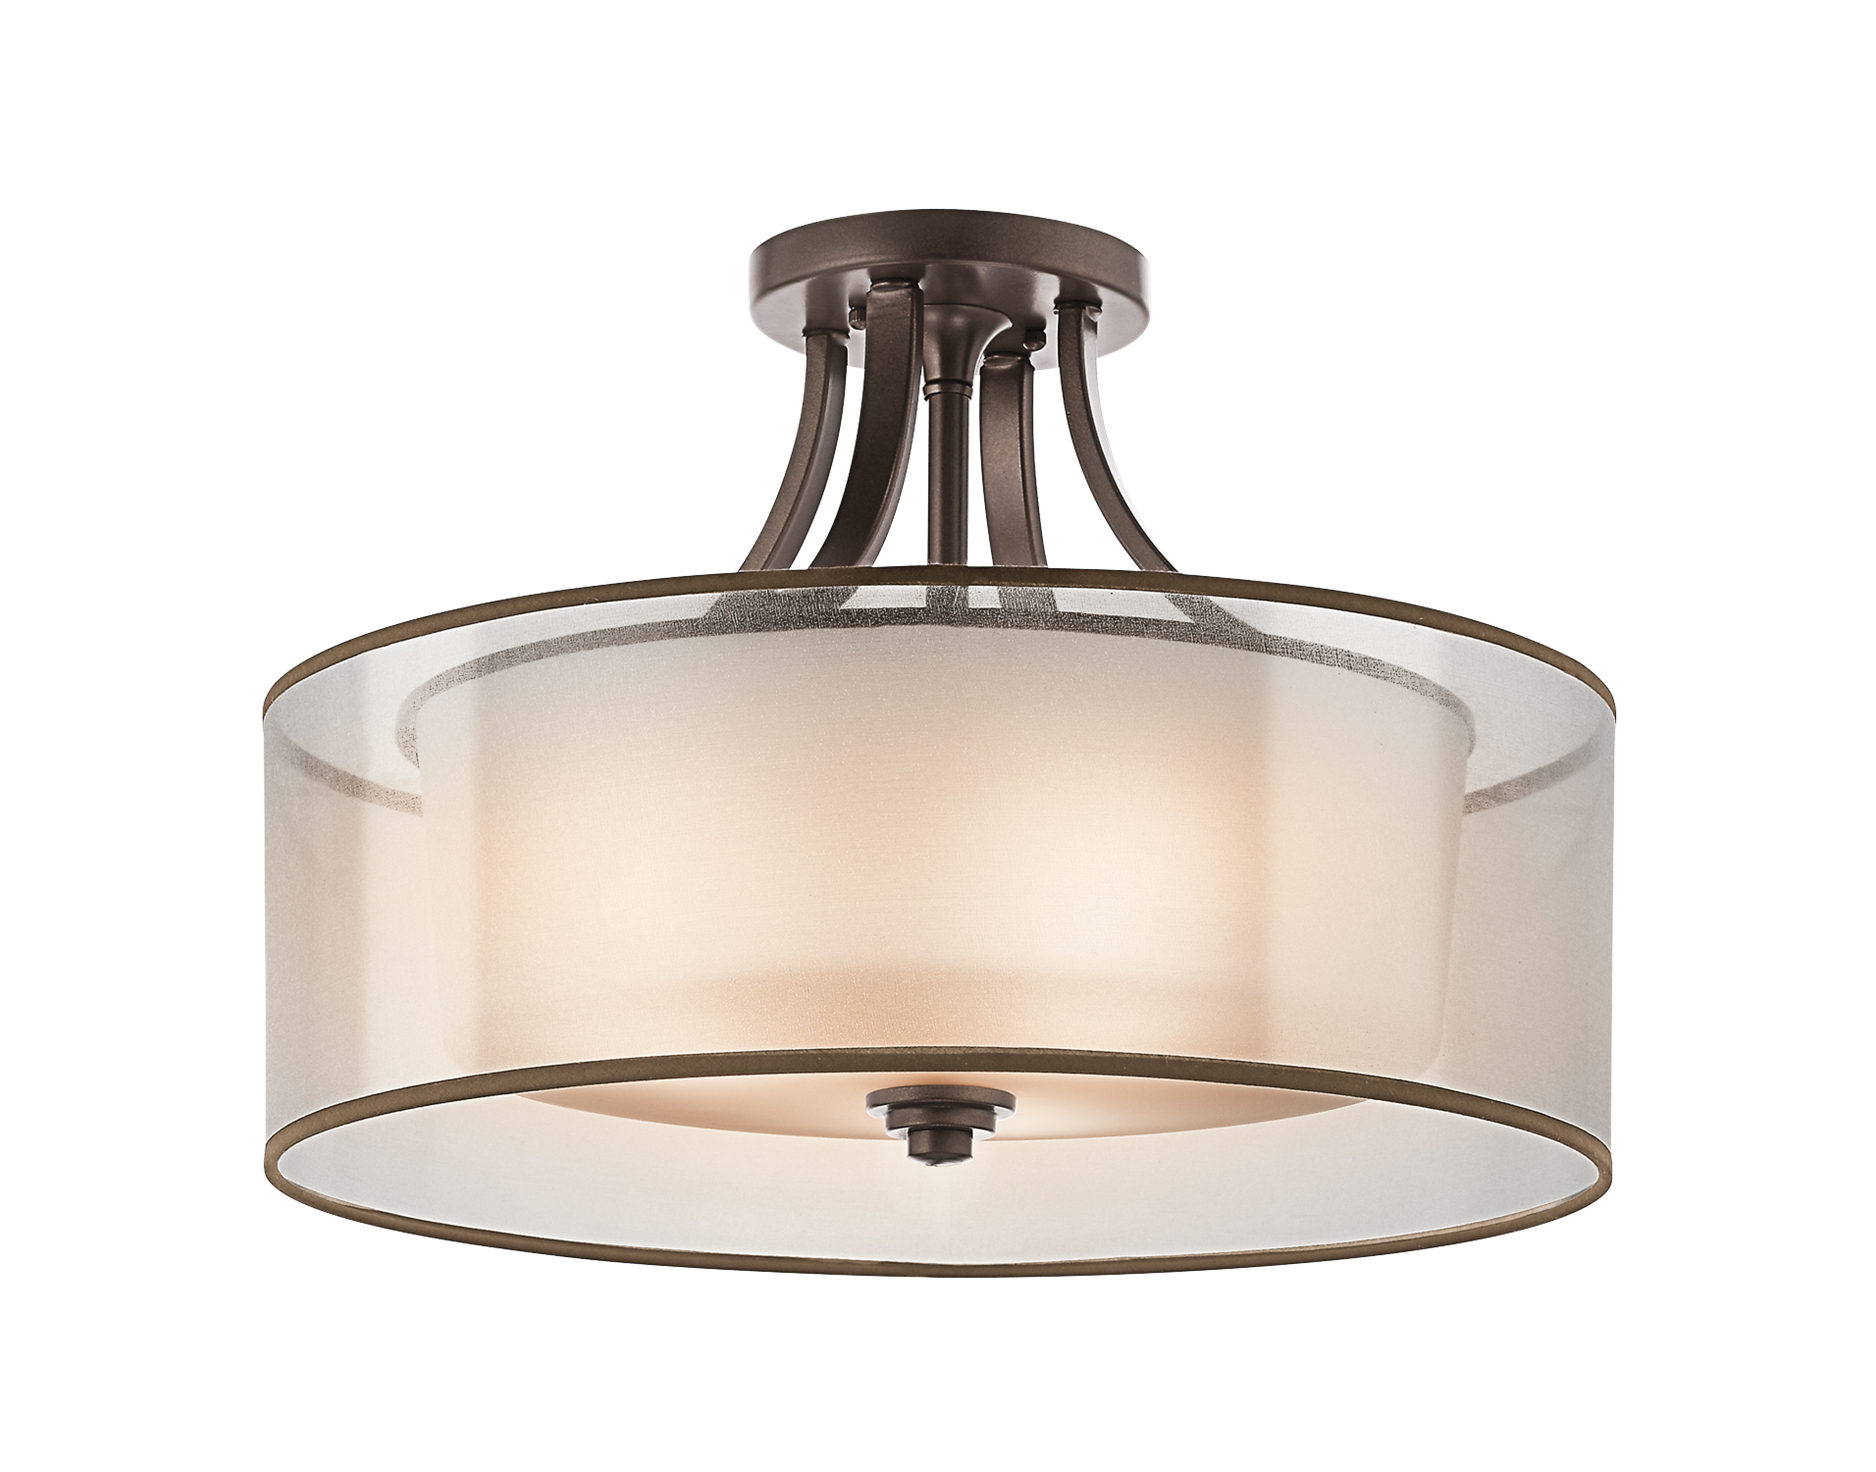 Lacey 4 Light Semi Flush Ceiling Light - MIZ | New Apt Wish List ...